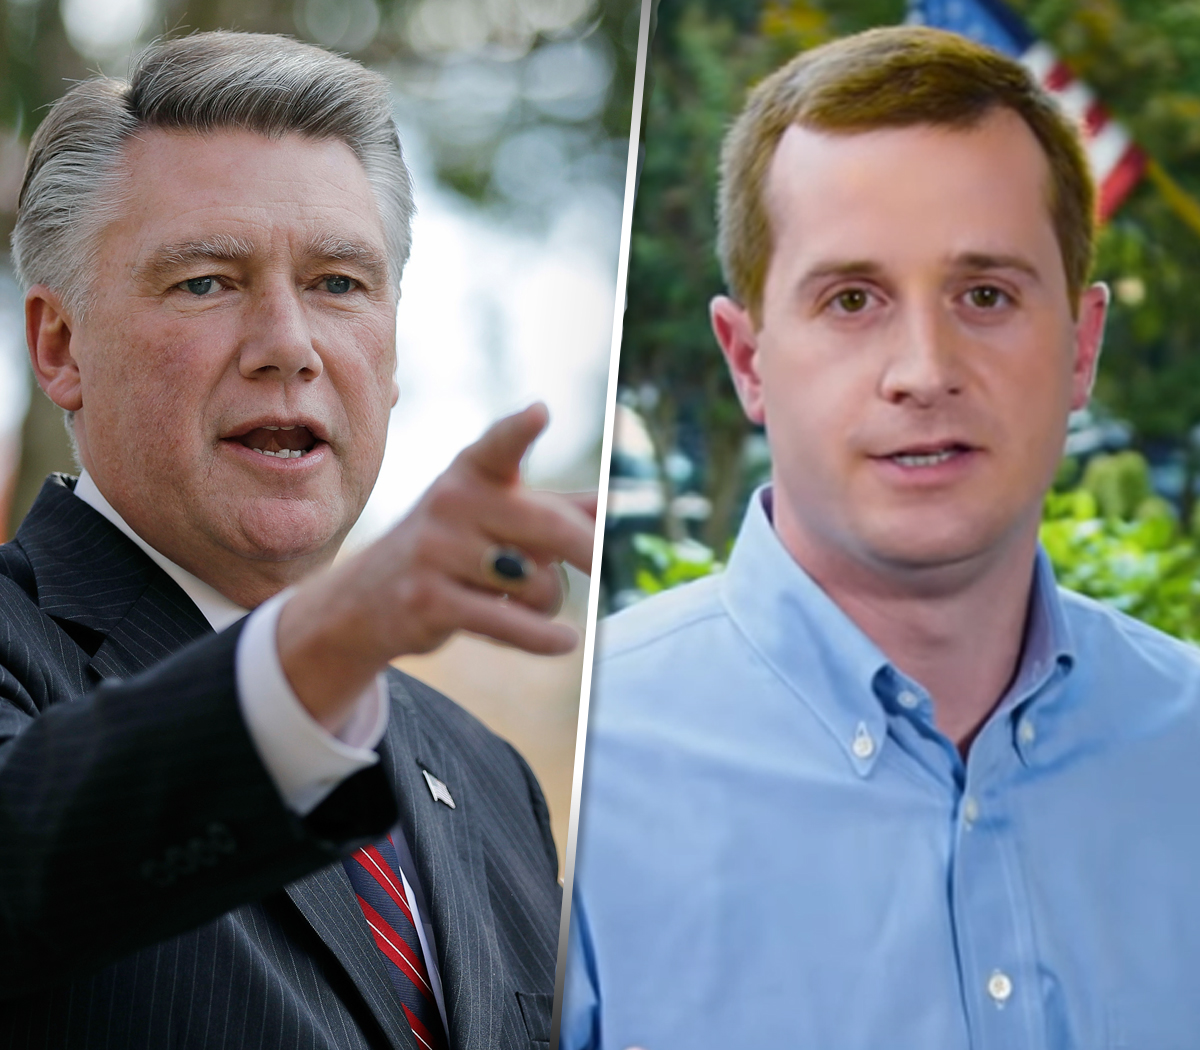 Vote fraud allegations leave N.C. House race unresolved with no clear path forward